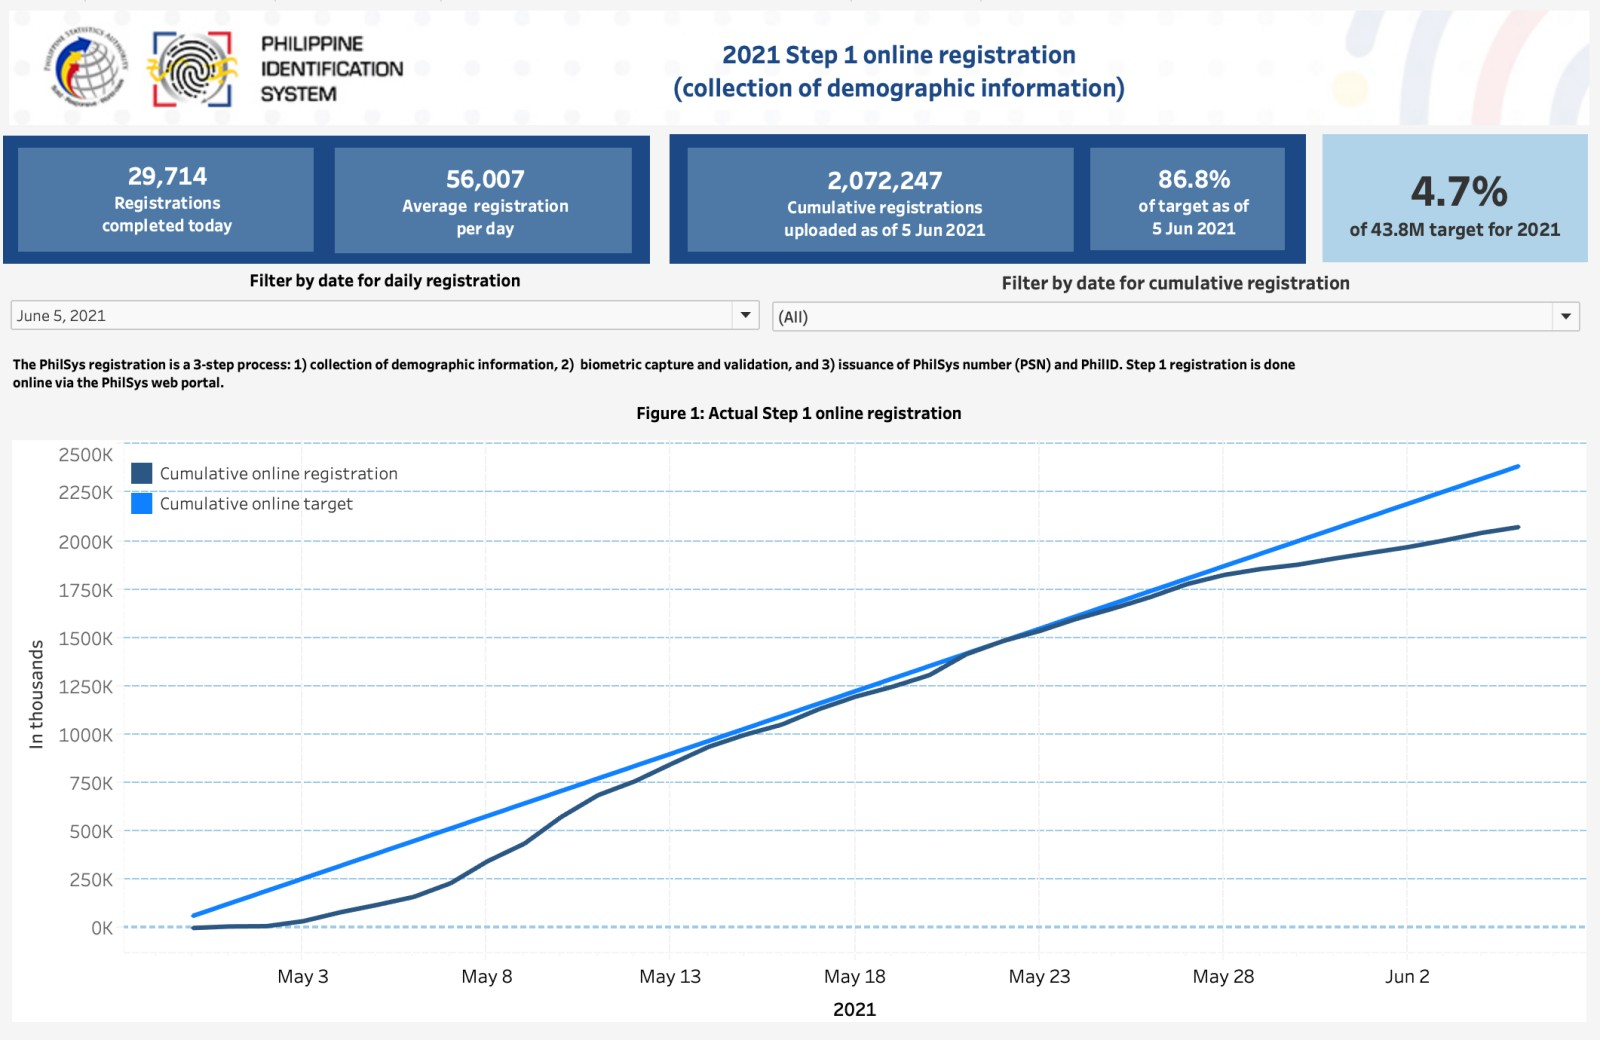 Online Step 1 Dashboard as of 5 June 2021